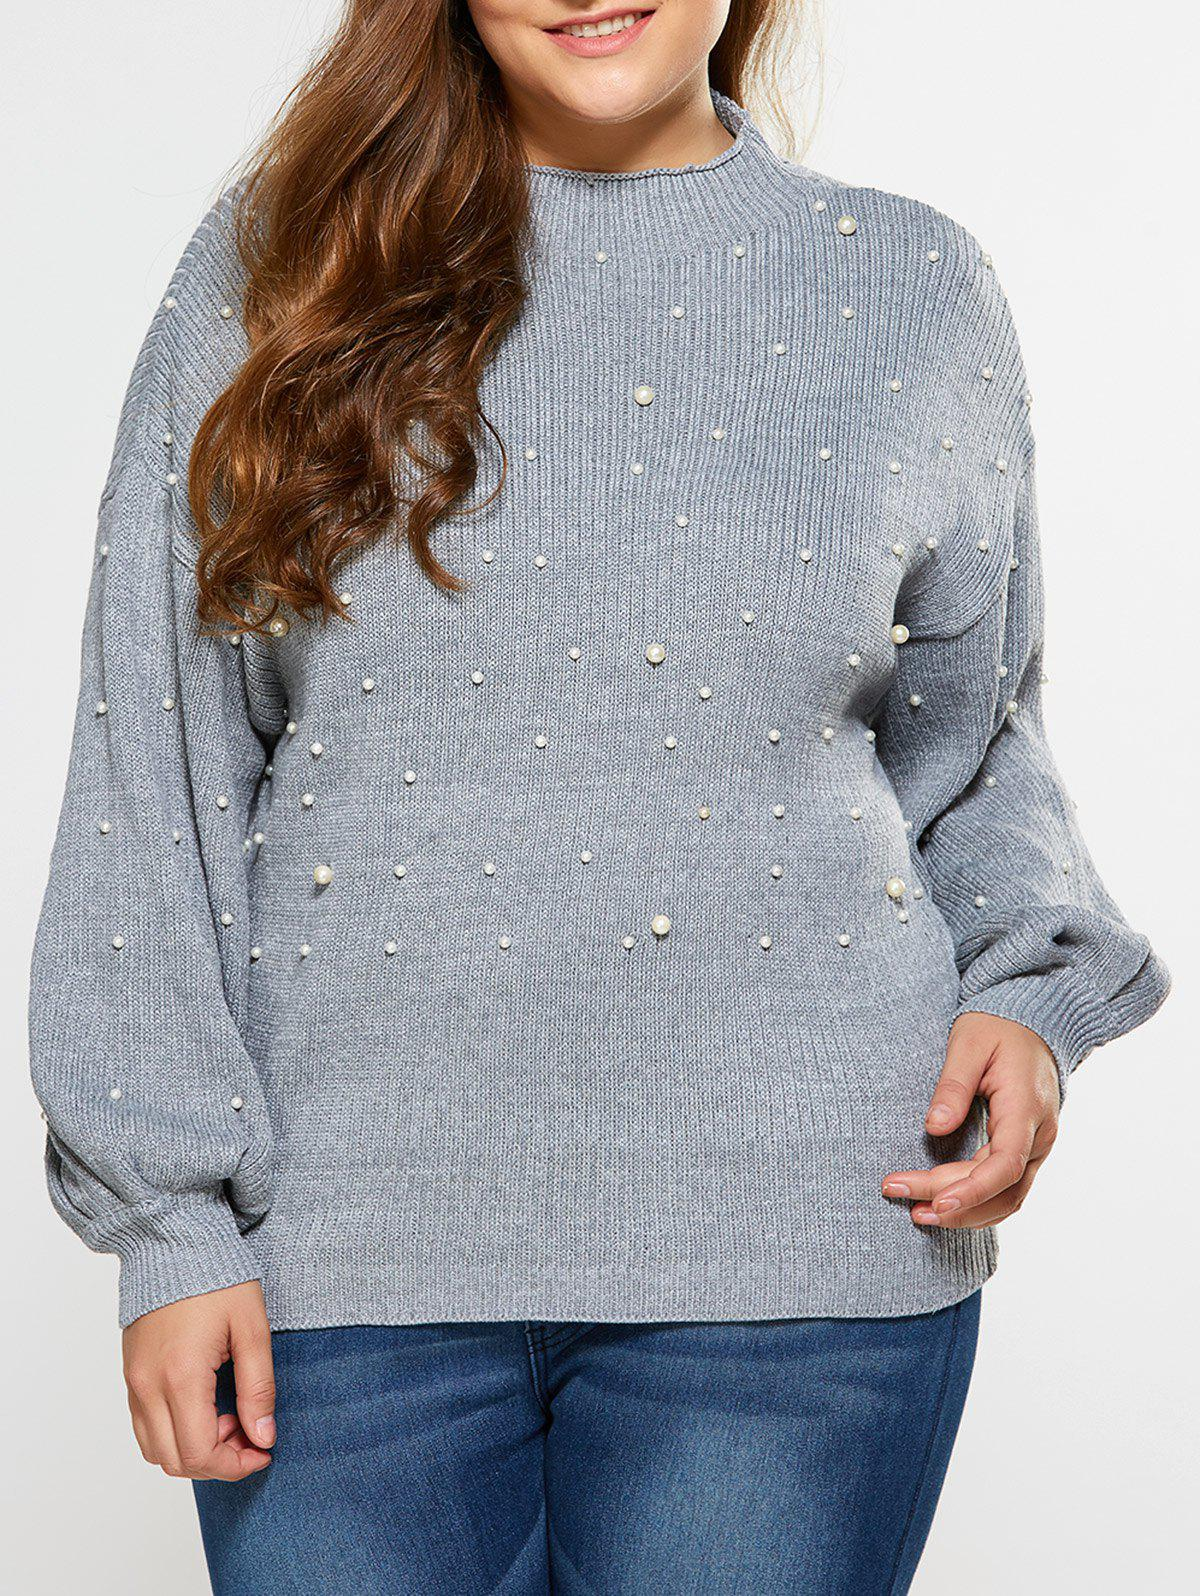 Loose Faux Pearl Embellished Sweater - LIGHT GRAY XL